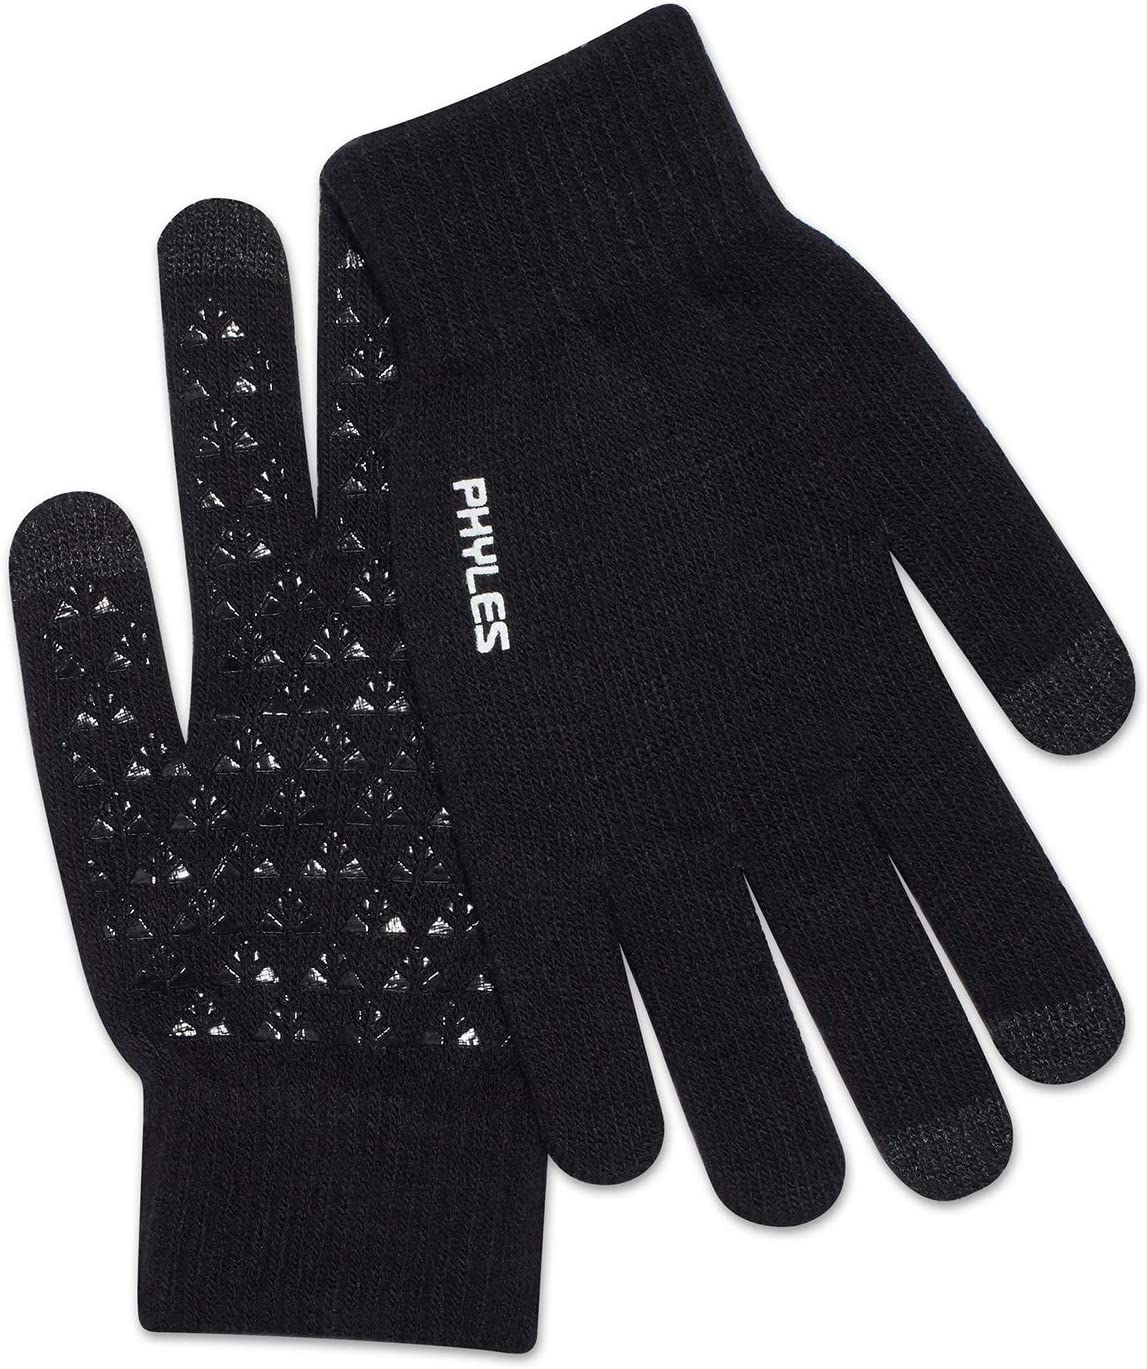 PHYLES Winter Knit Gloves Touchscreen Gloves Women Men Thermal Wool Lined Texting Gloves Running Gloves